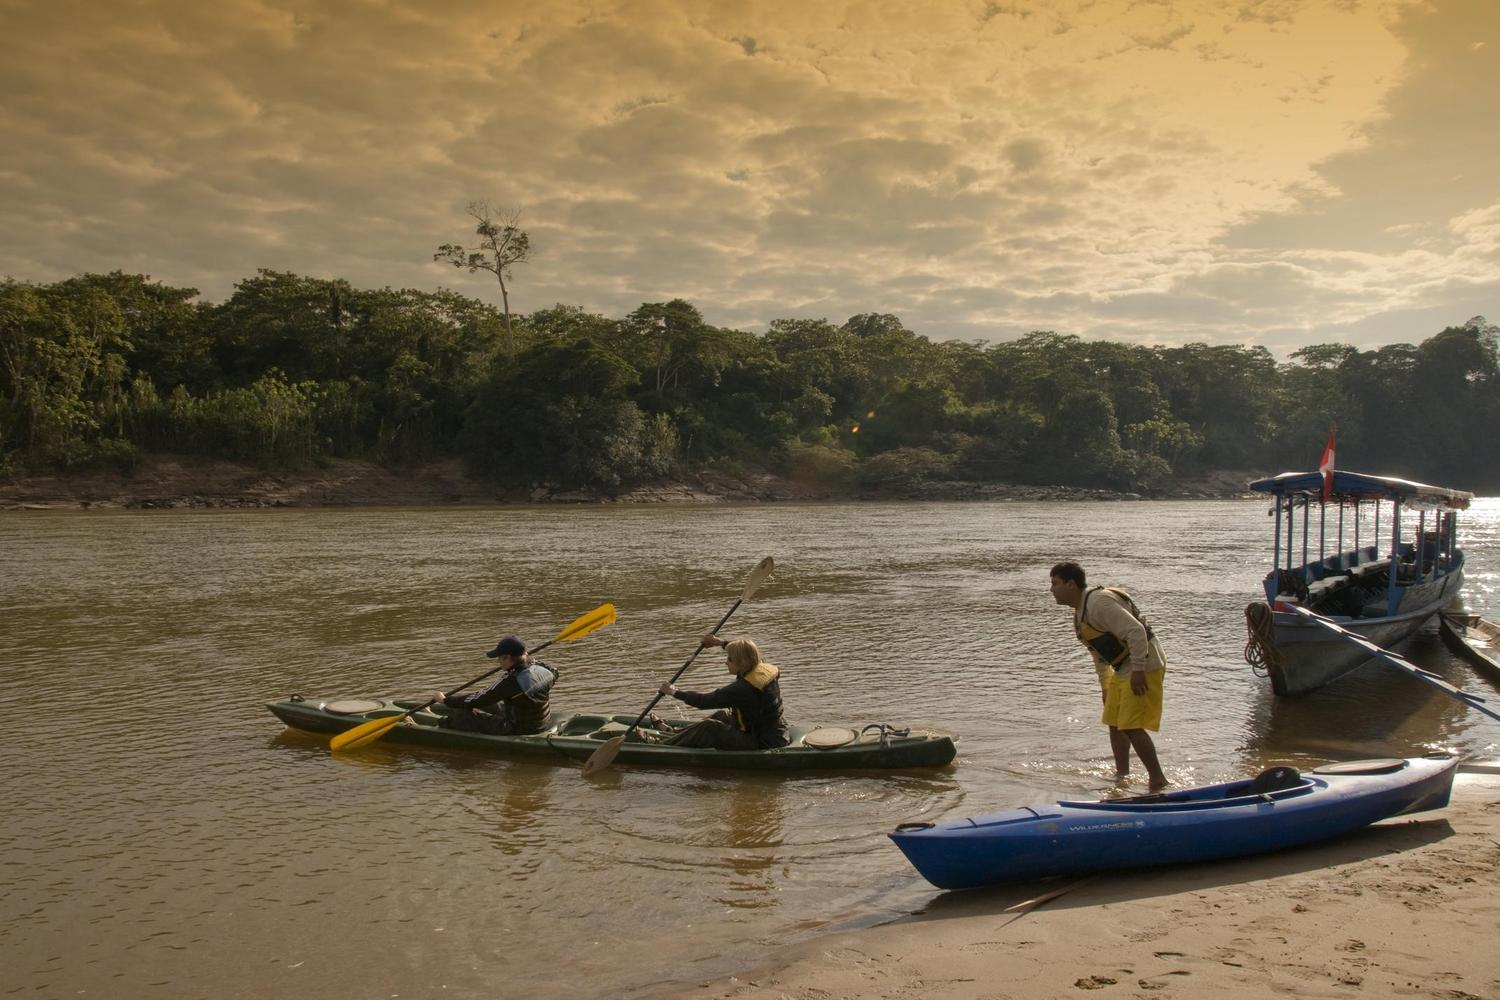 Paddling along the Tambopata River in Peru's Amazon